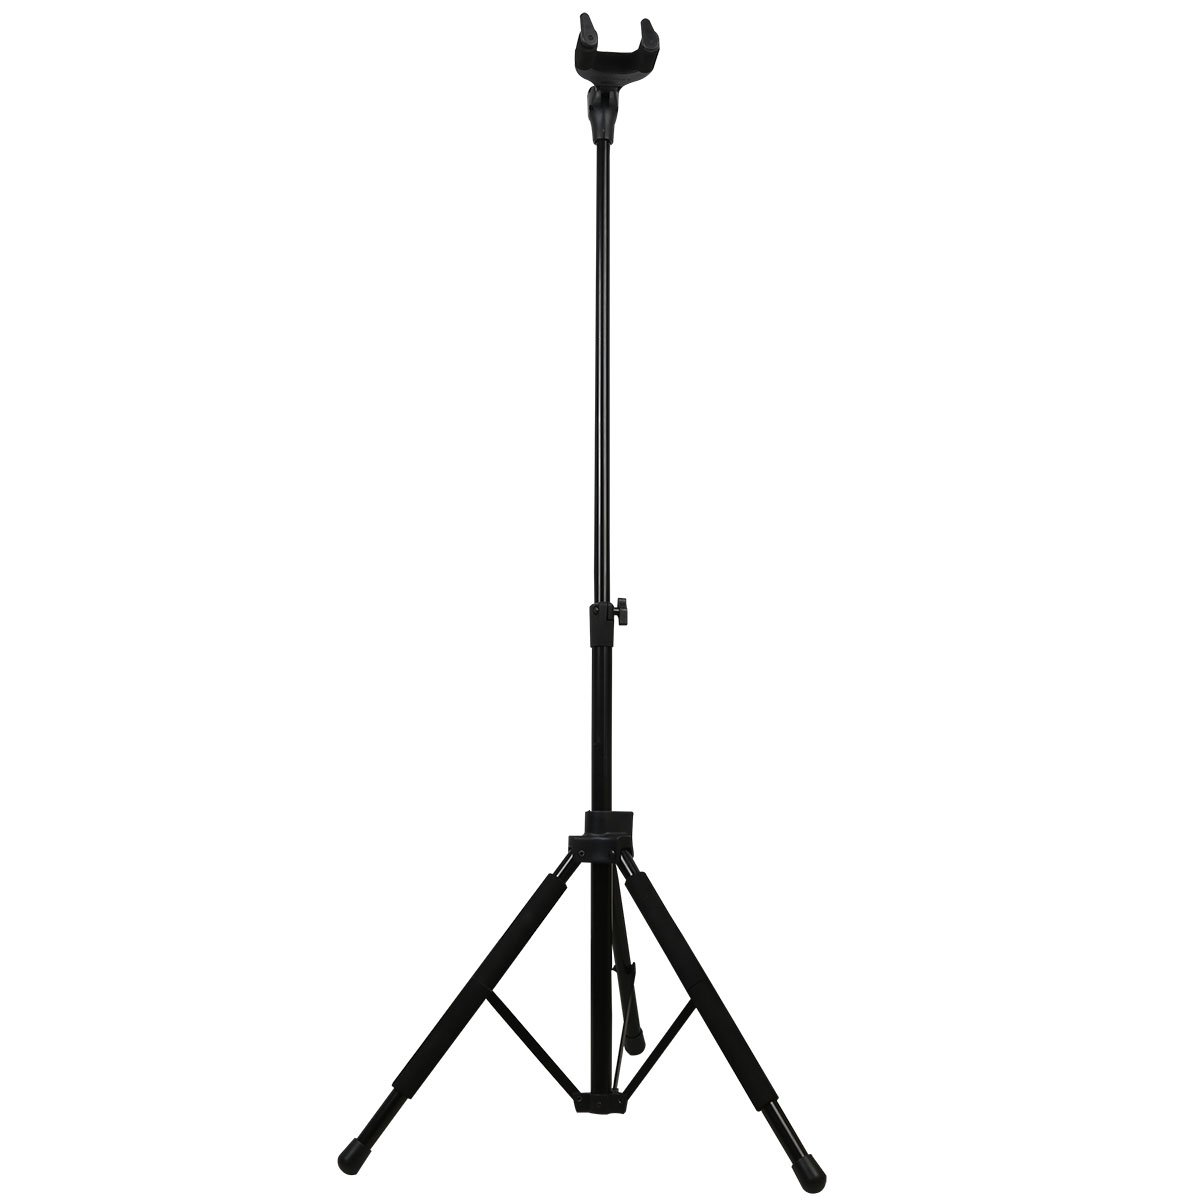 Blueseason Black Tripod Guitar Stand Bracket with Locking Legs and Self-closing Security Gate for Electric, Acoustic and Bass,black